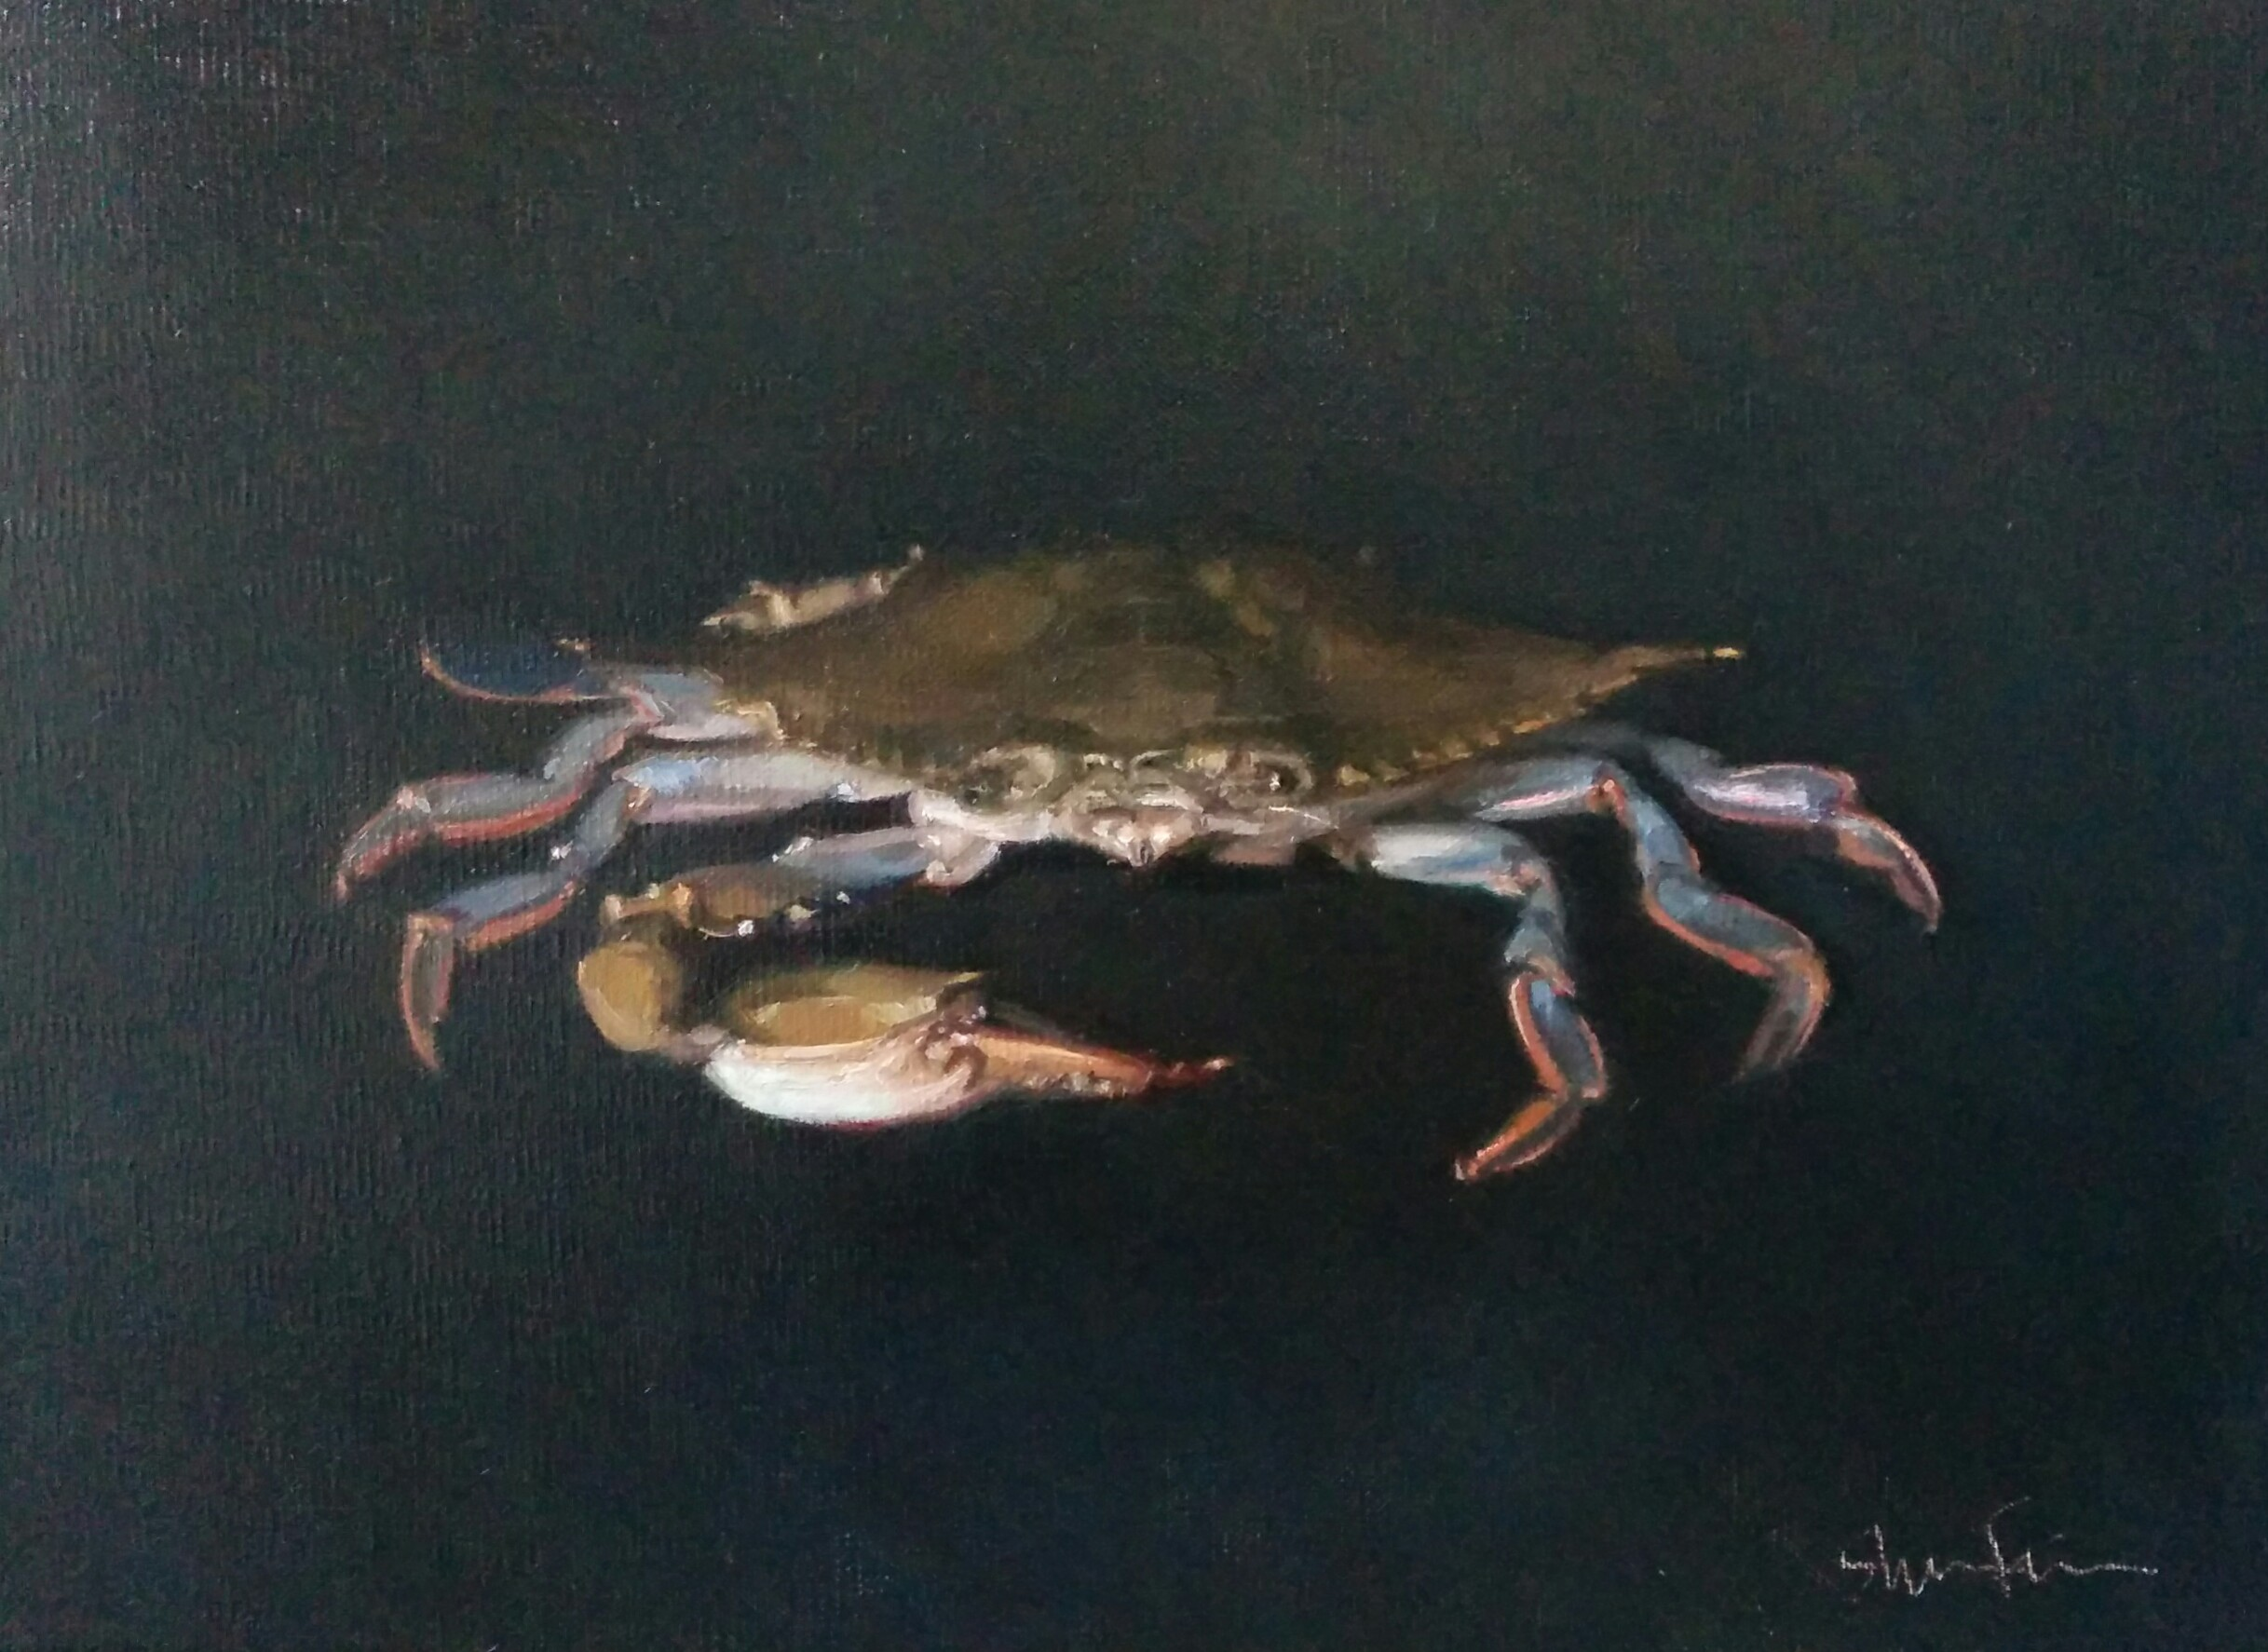 Variation No. 1 on CRAB (Lefty)